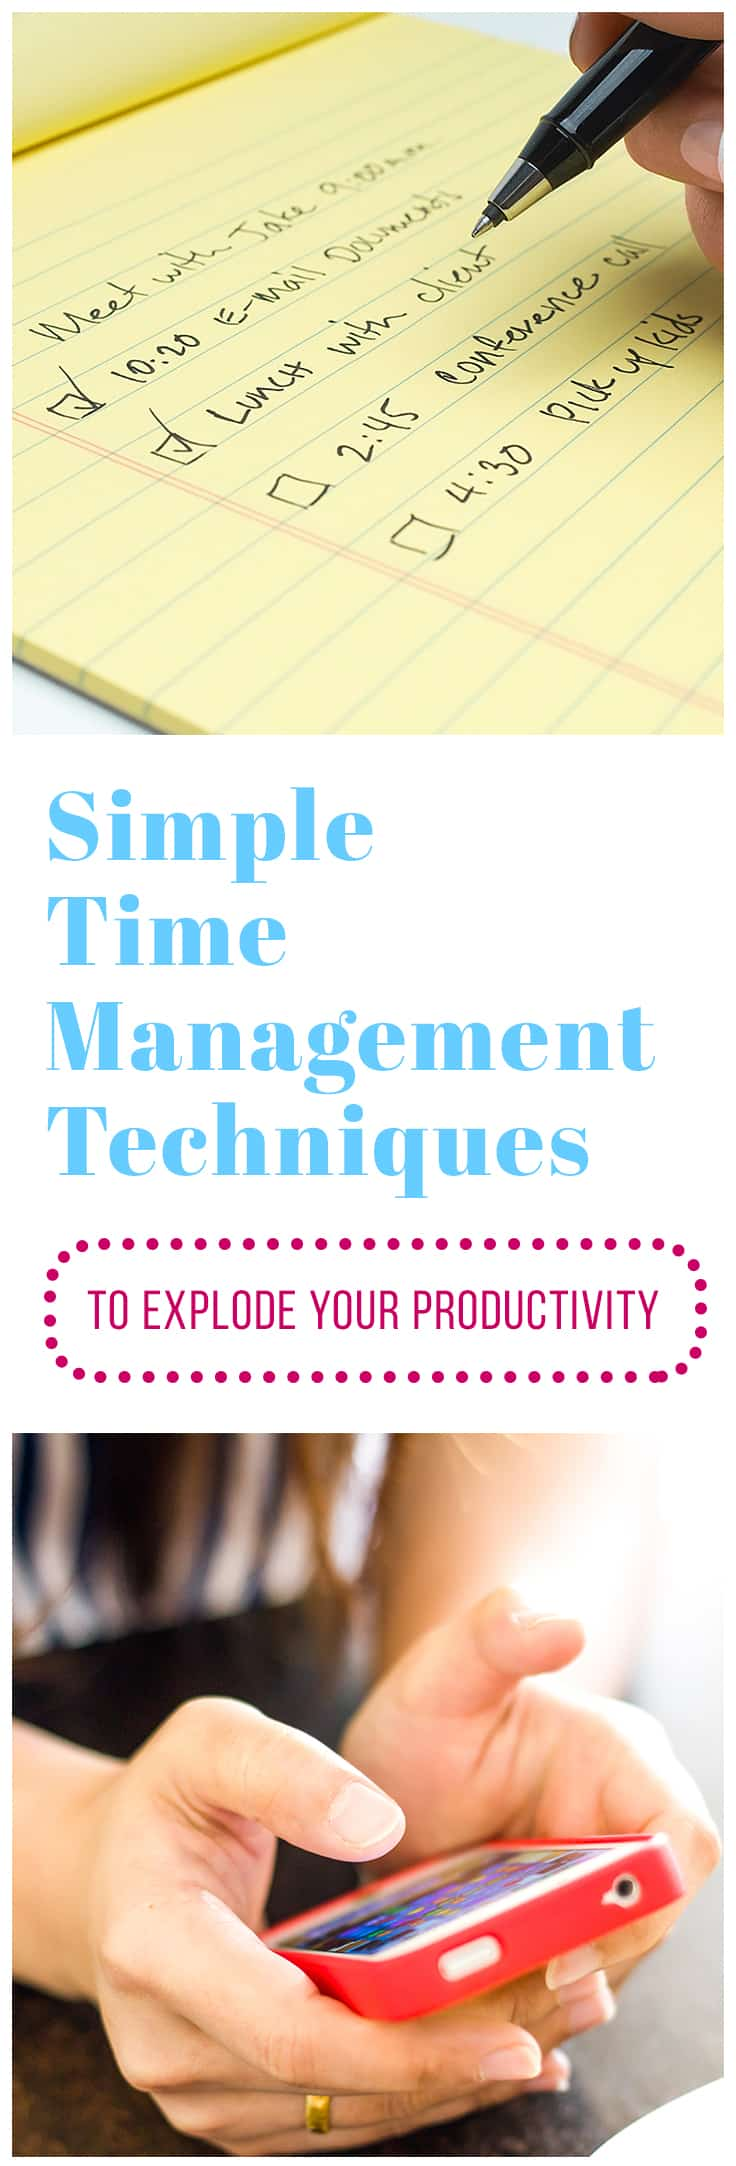 I have worked the corporate world at 60 hours a week while raising a toddler and running an Etsy shop. I had to learn ways to manage my time and boost my productivity. Now I use these same techniques to run two blogs and write for others - all while raising my son.  These time management techniques will not just save you time and make you productive, they will allow you to get in time for yourself.  #timemanagement #timemanagementtips #timemanagementtechniques